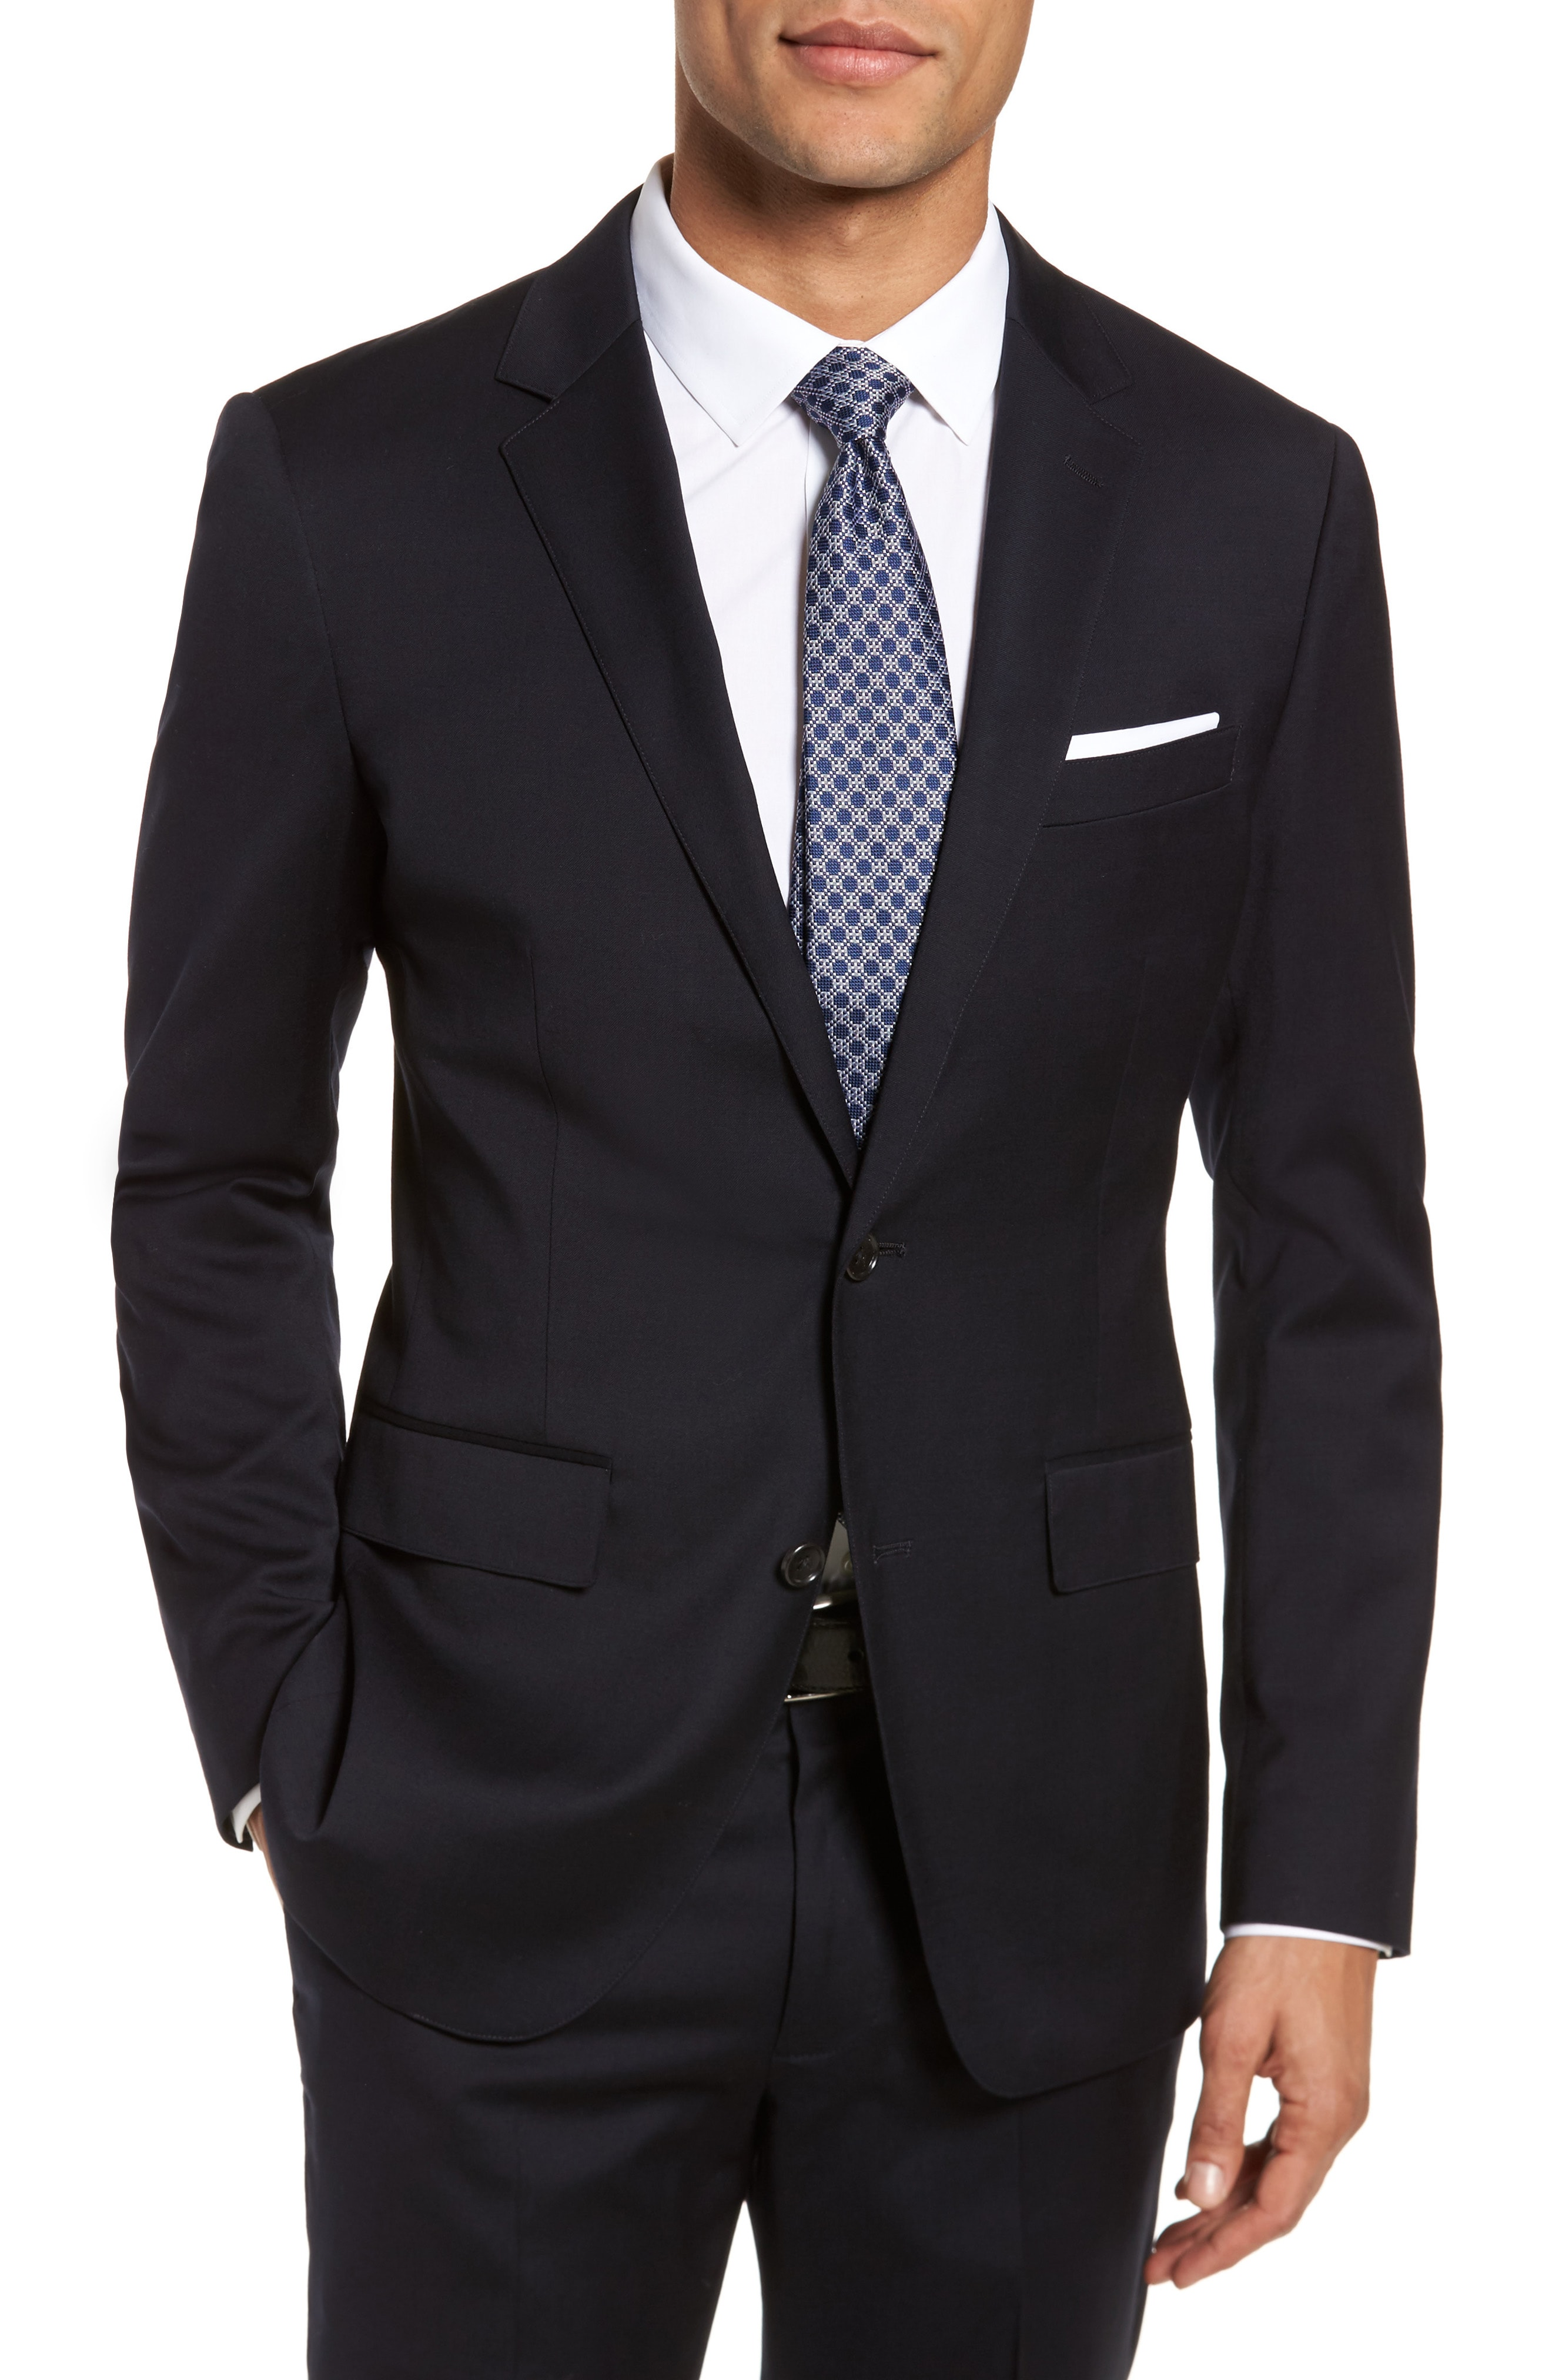 Men's Black Suits & Separates | Nordstrom